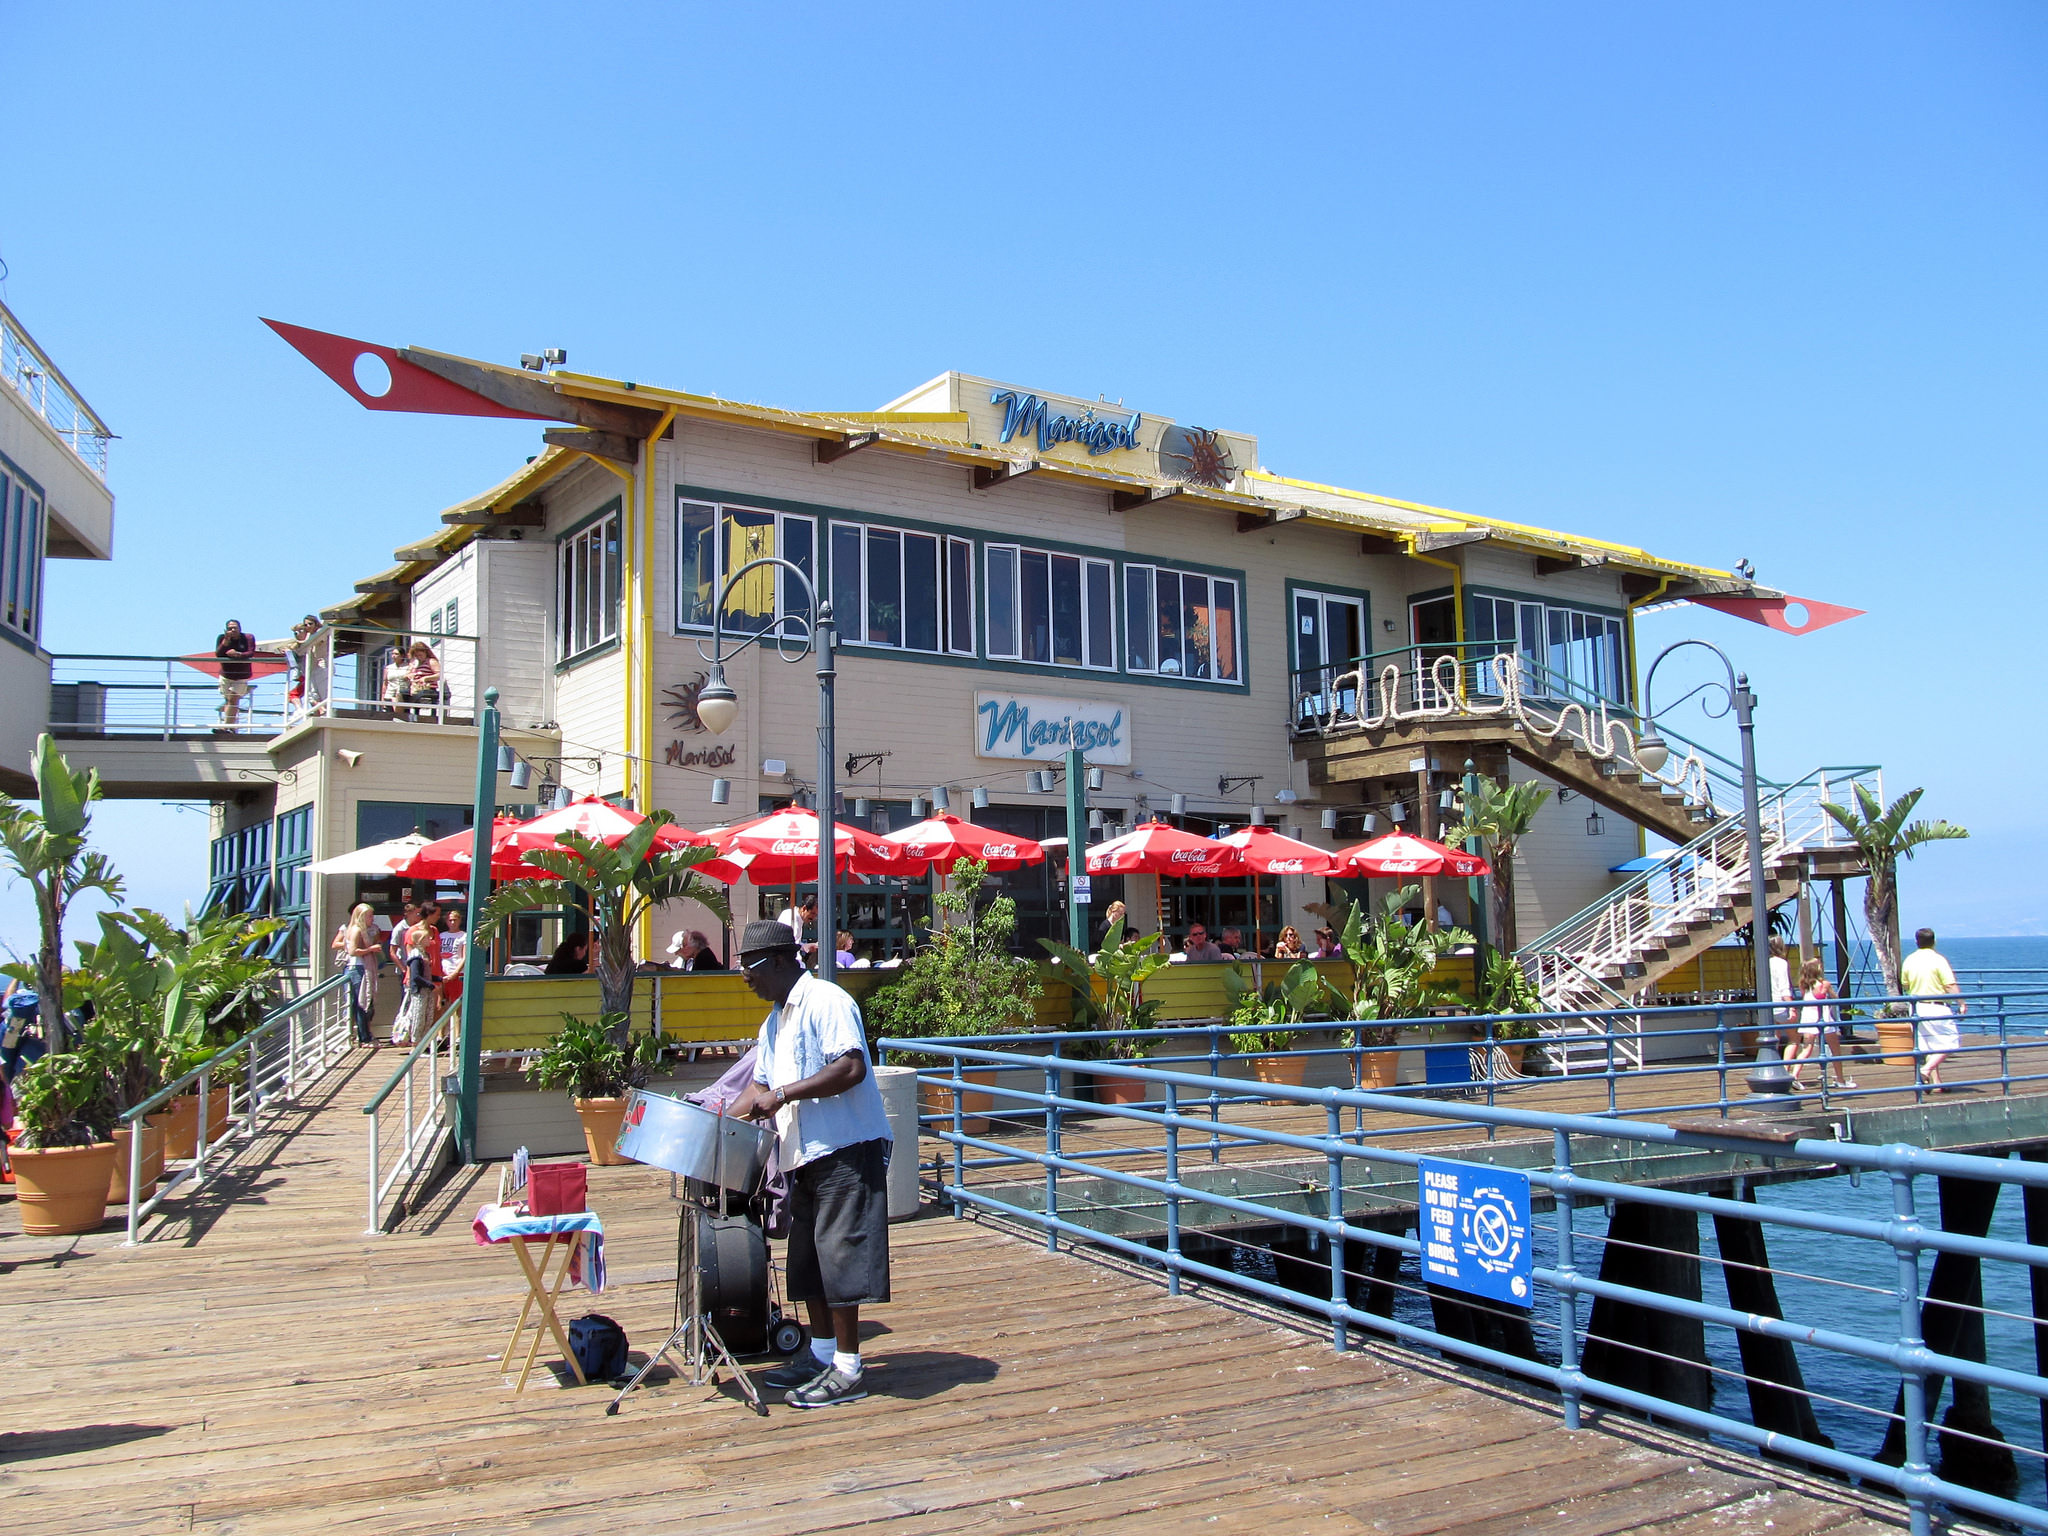 5 Restaurants with Breathtaking Views in Los Angeles: Mariasol on the SantaMonica Pier